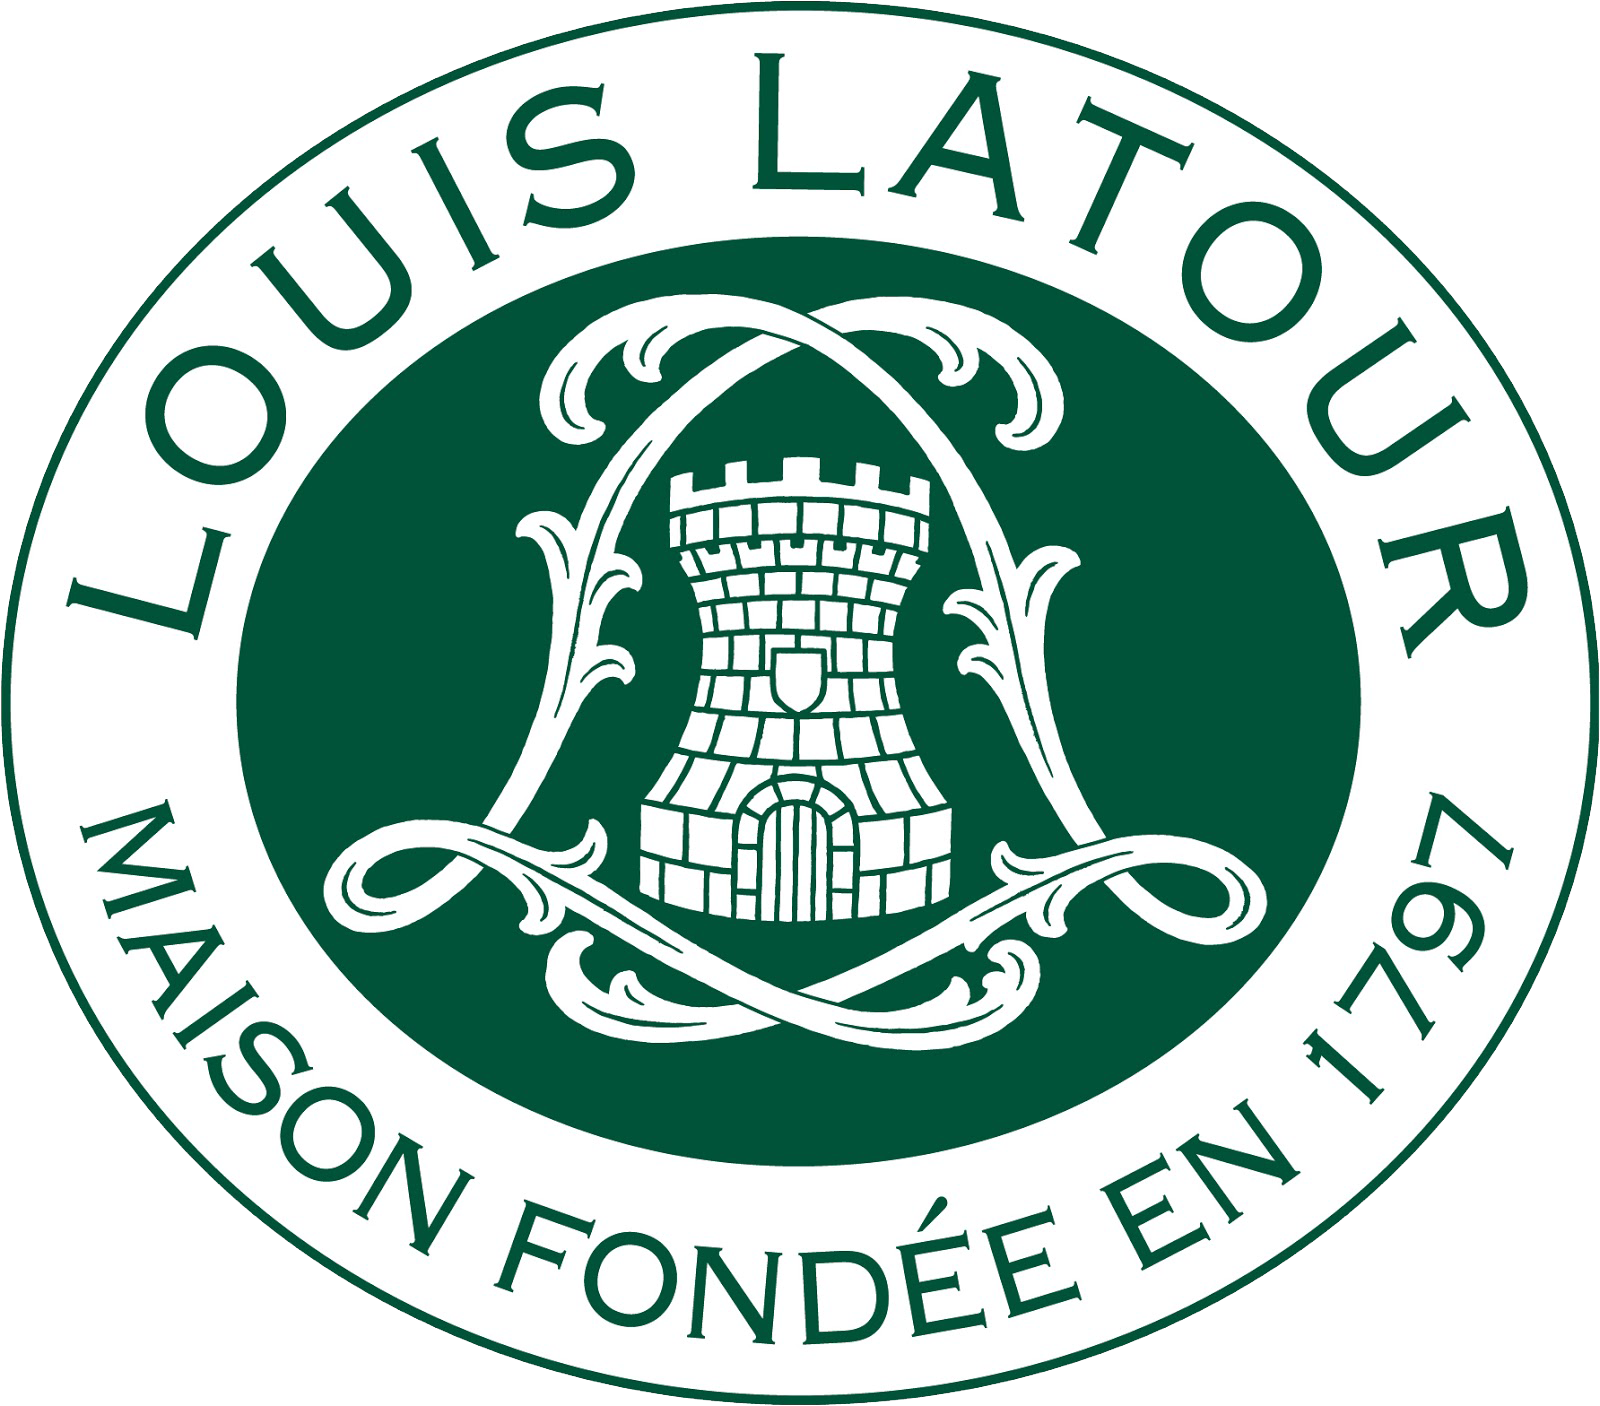 maison-louis-latour-logo-stars-ofwine-online-wine-tasting-class-image-at-learnaboutwine